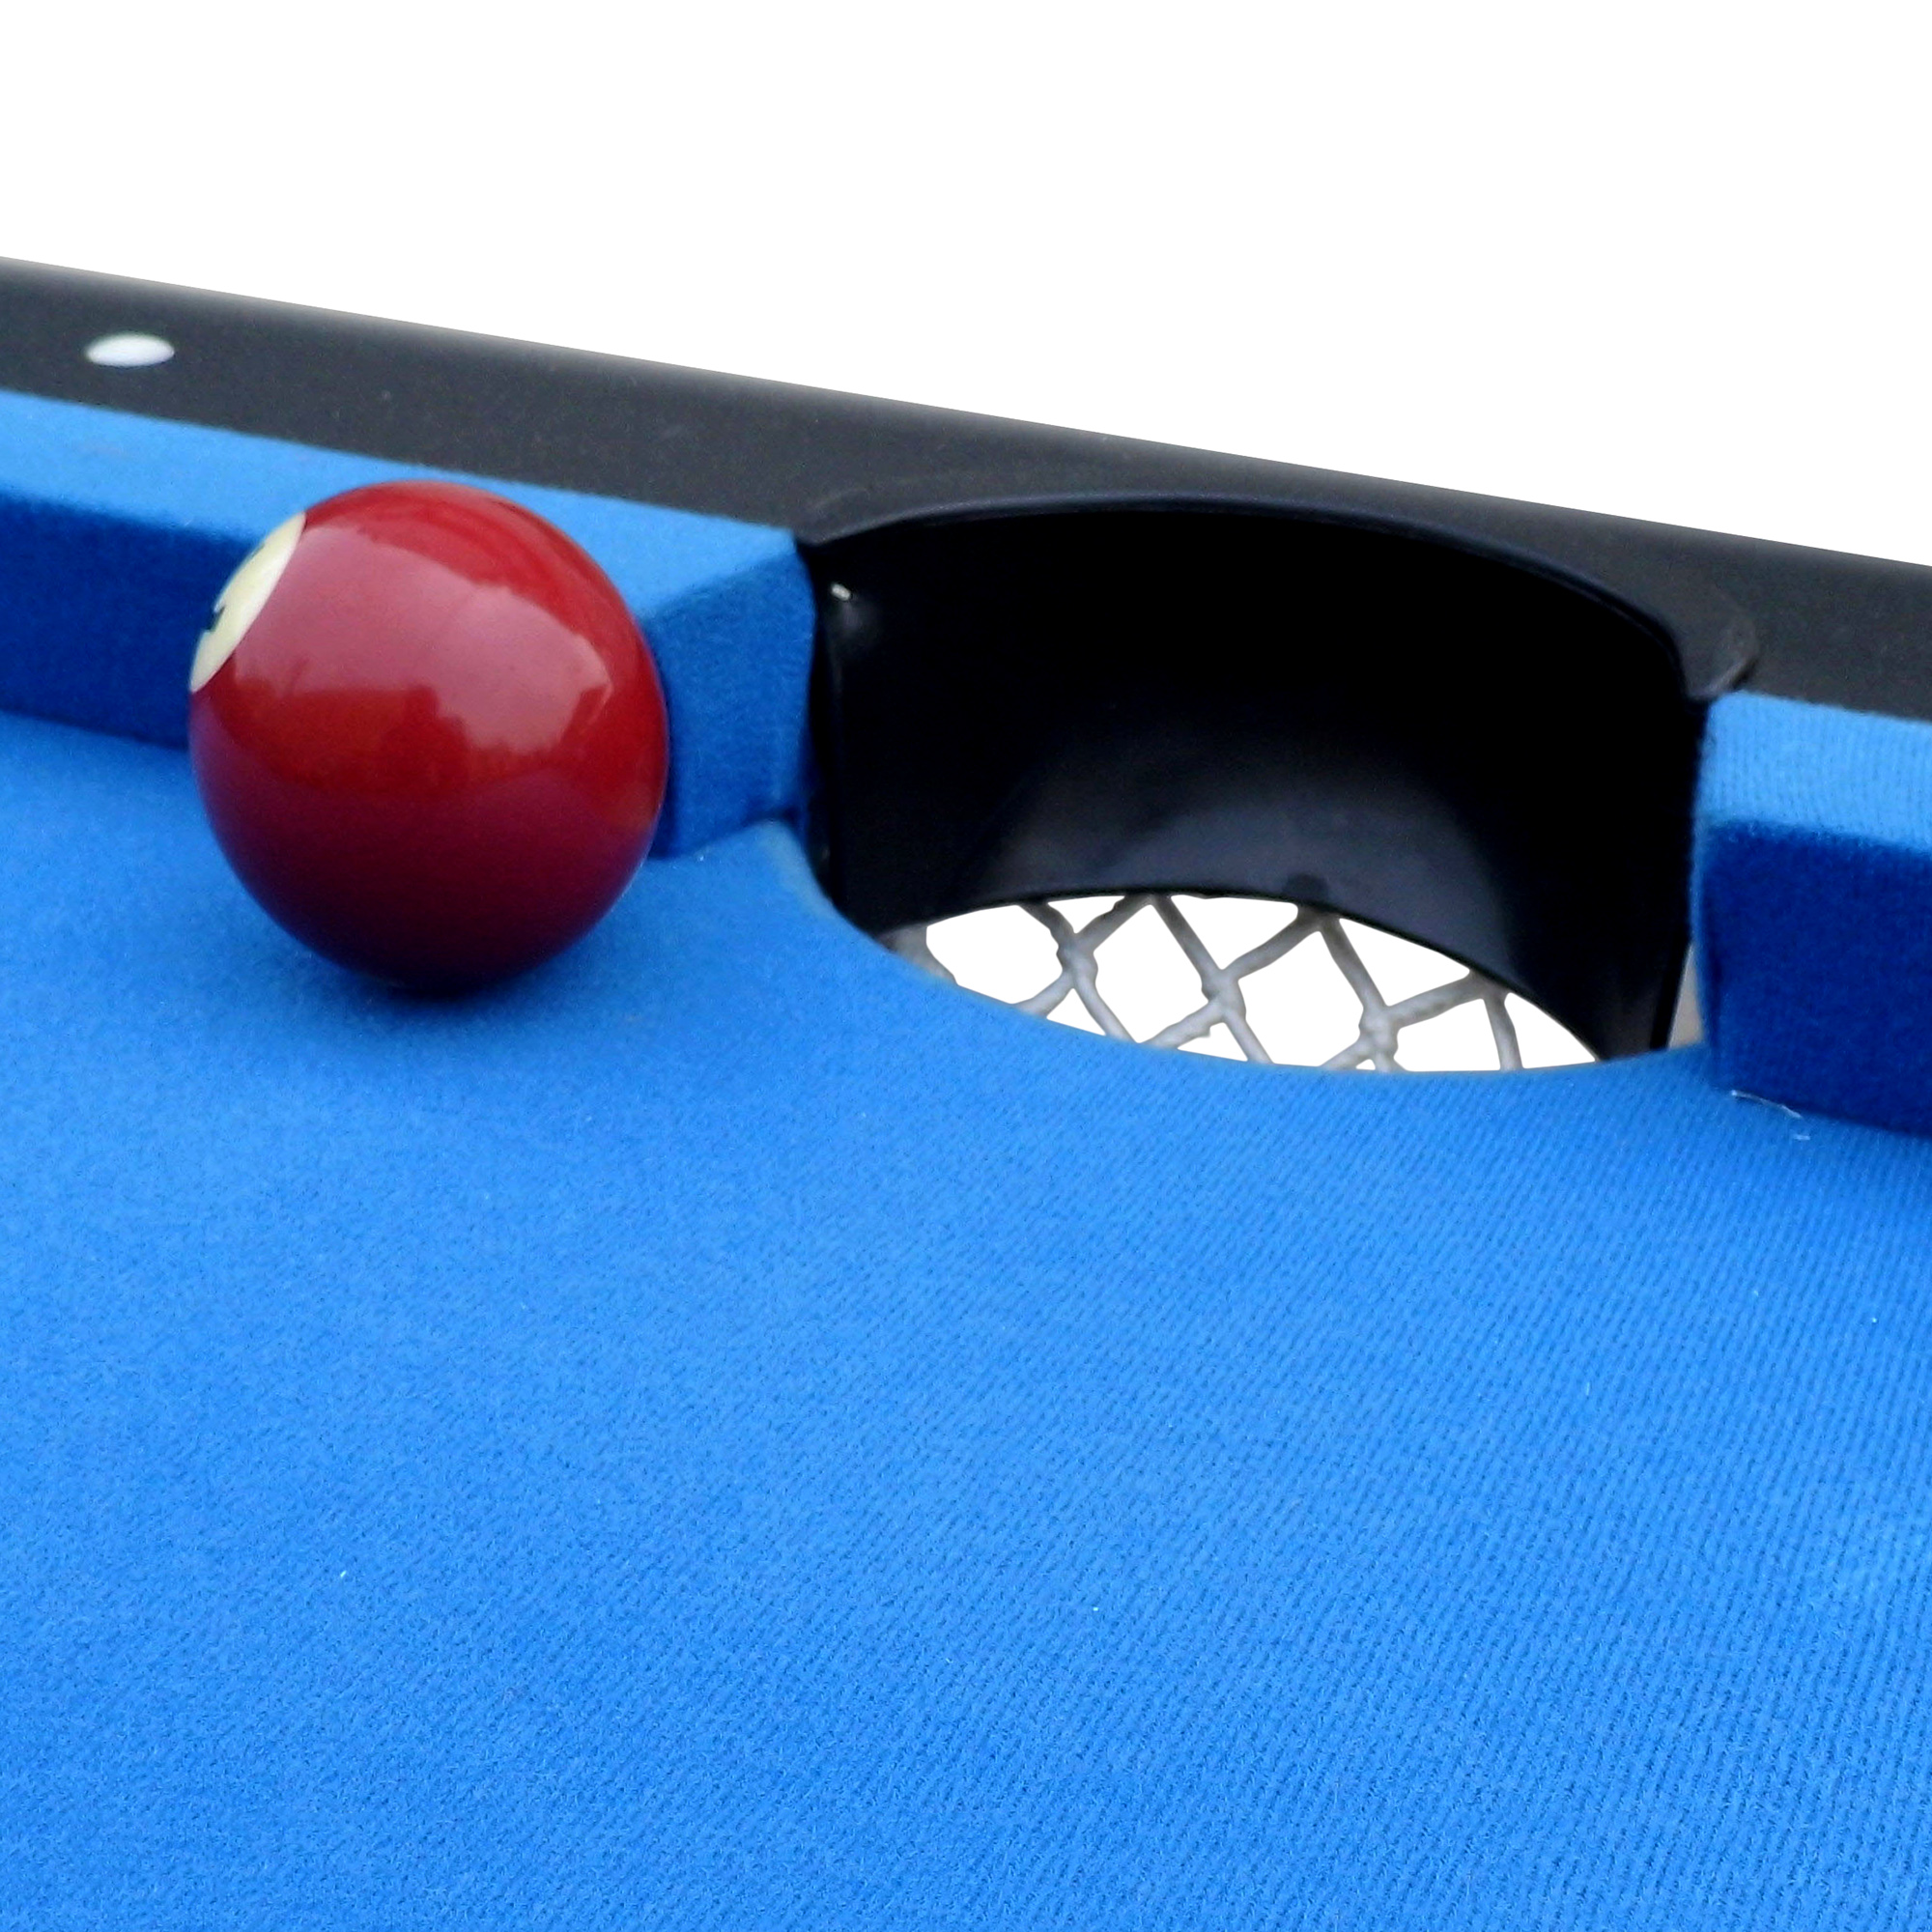 Hathaway Fairmont Portable Ft Pool Table For Families With Easy - Hathaway portable pool table